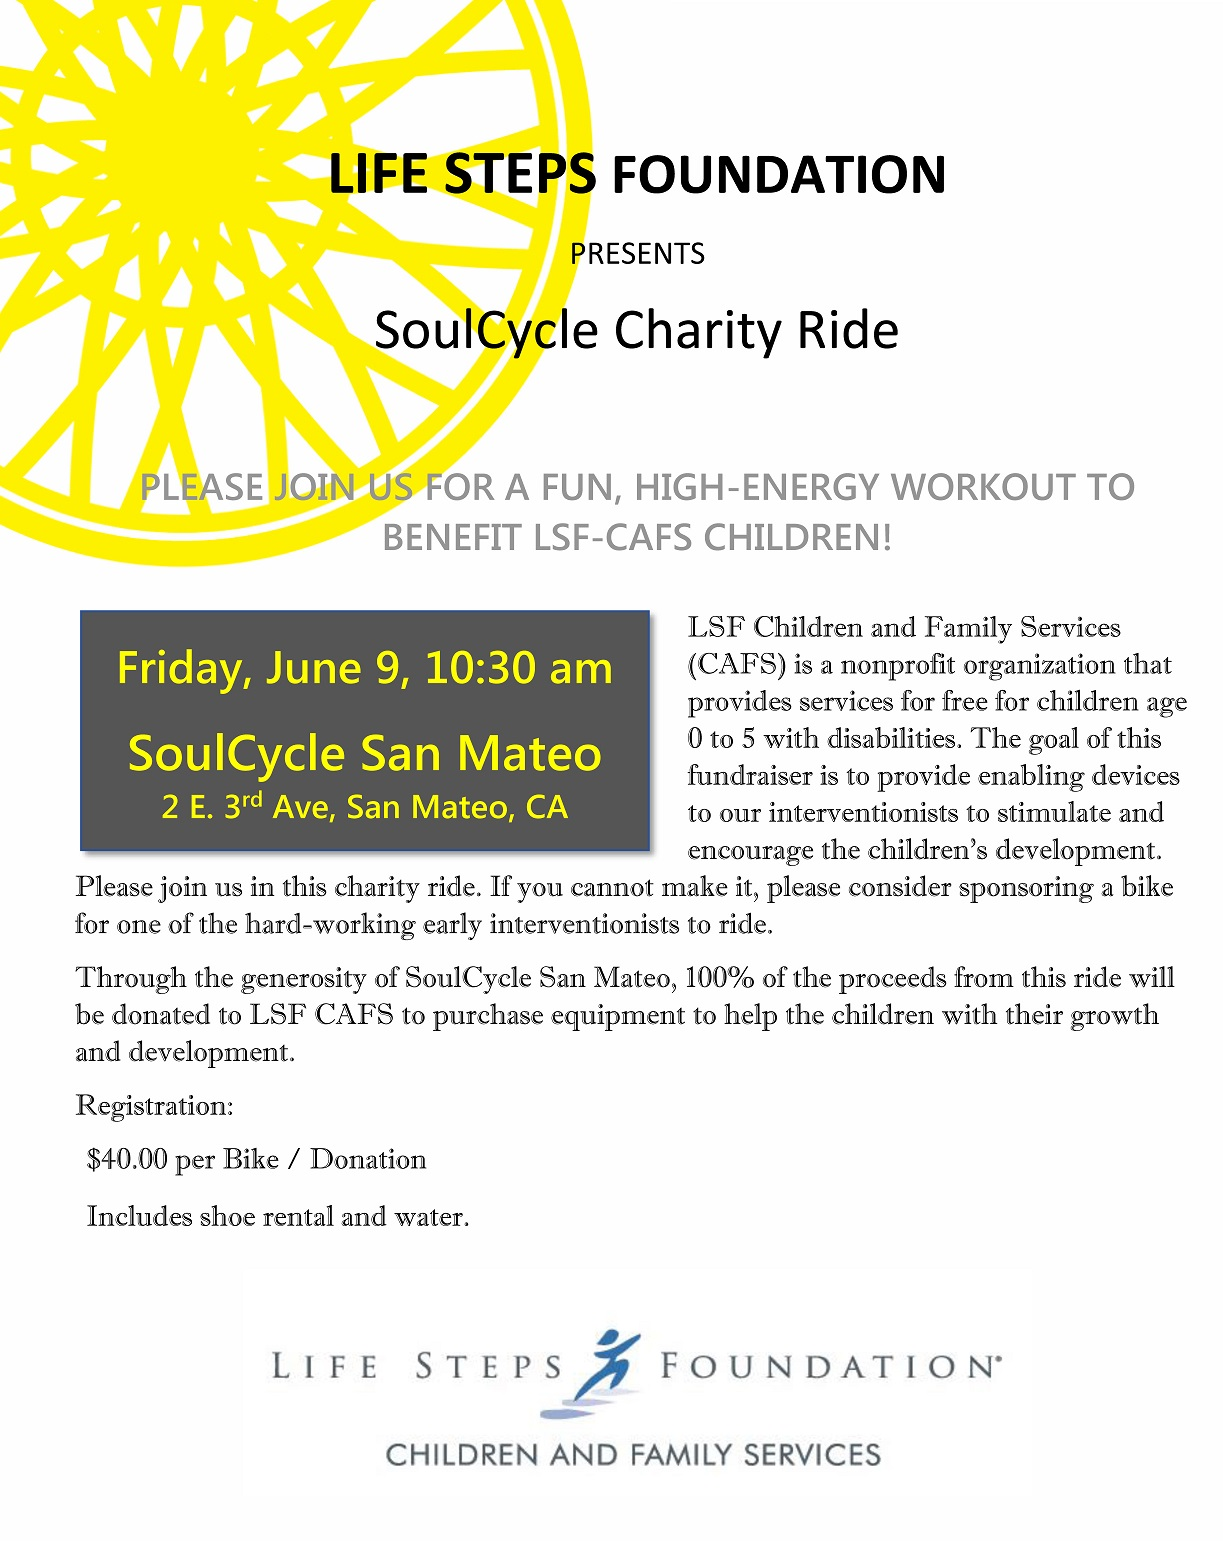 CAFS SoulCycle Charity Ride